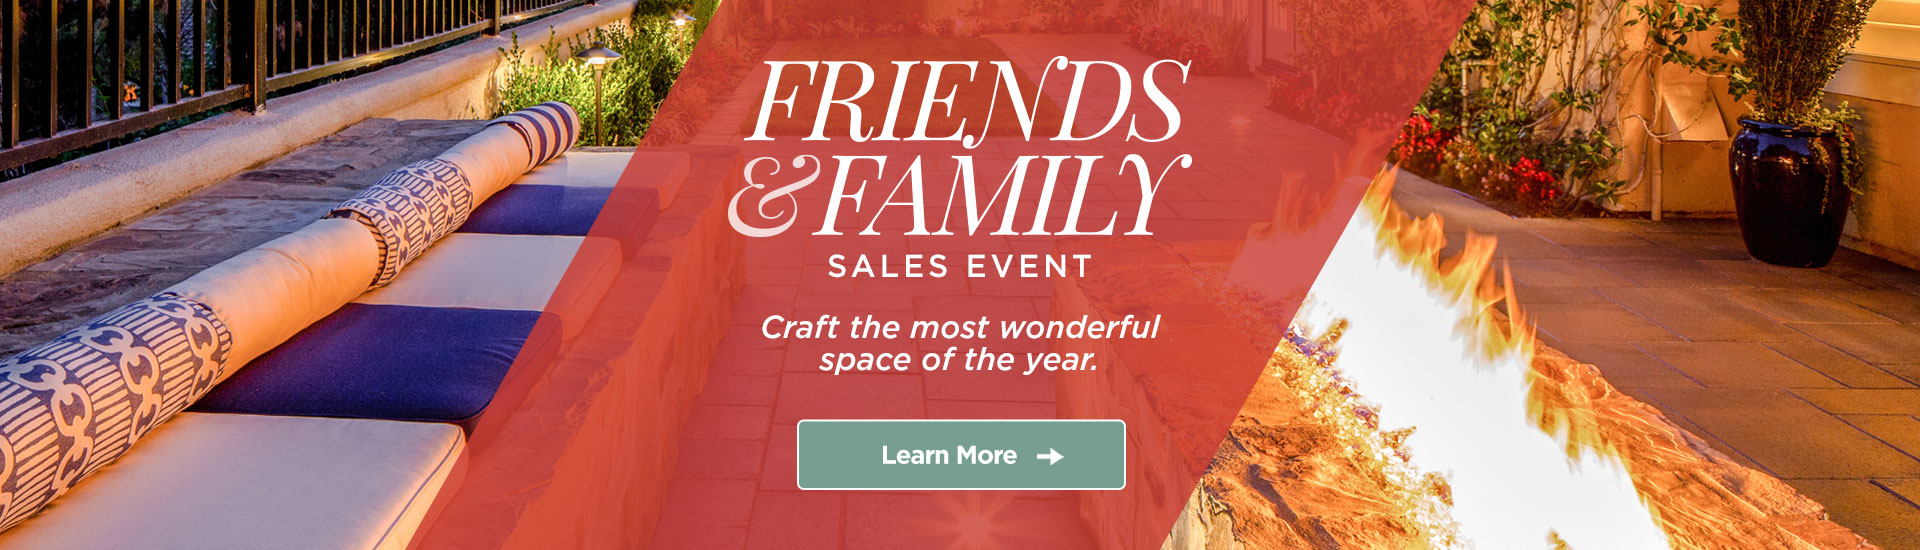 Friends & Family Sales Event